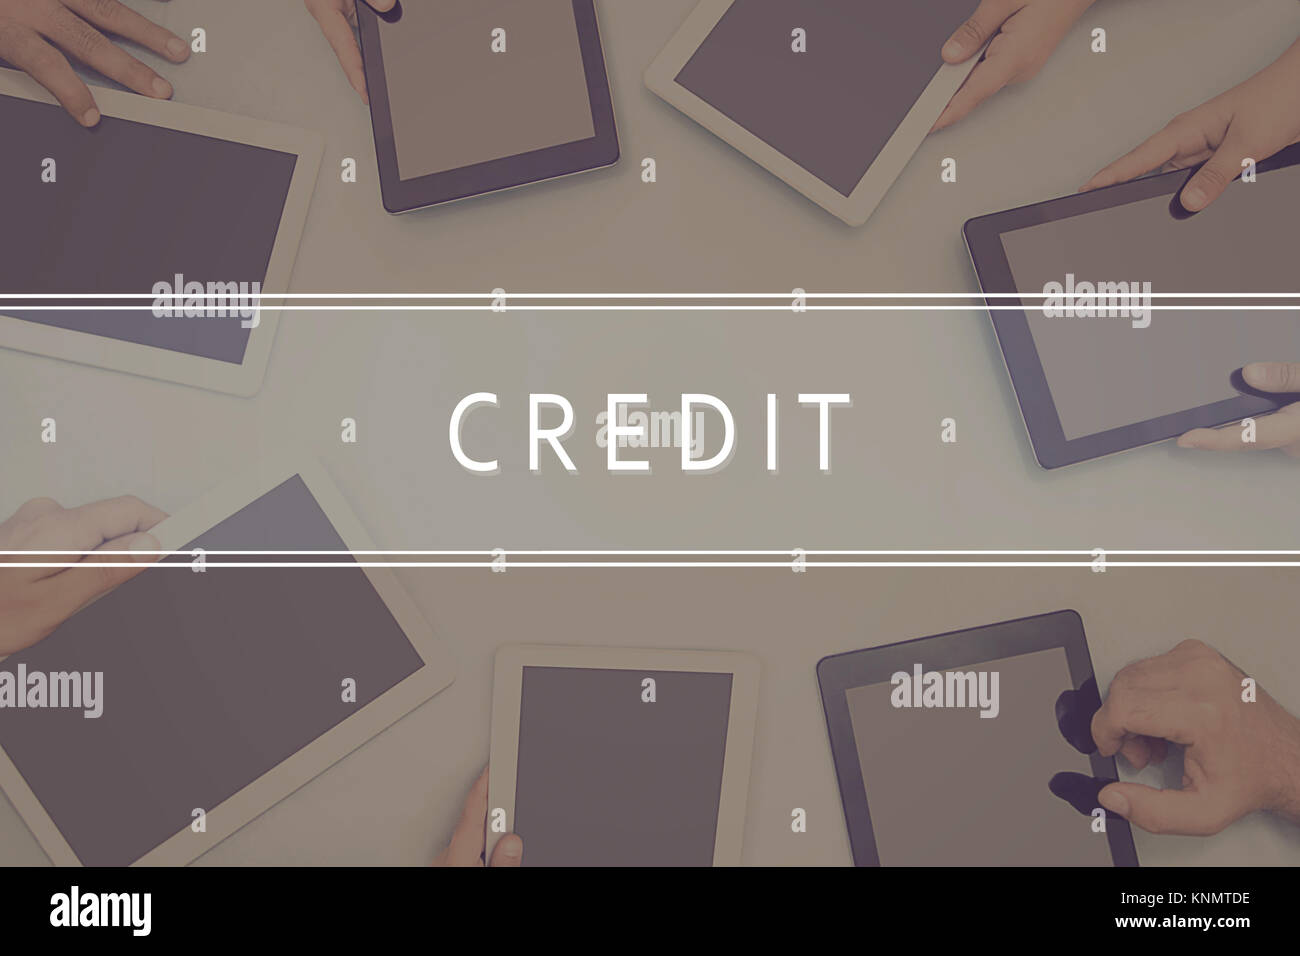 CREDIT CONCEPT Business Concept. - Stock Image